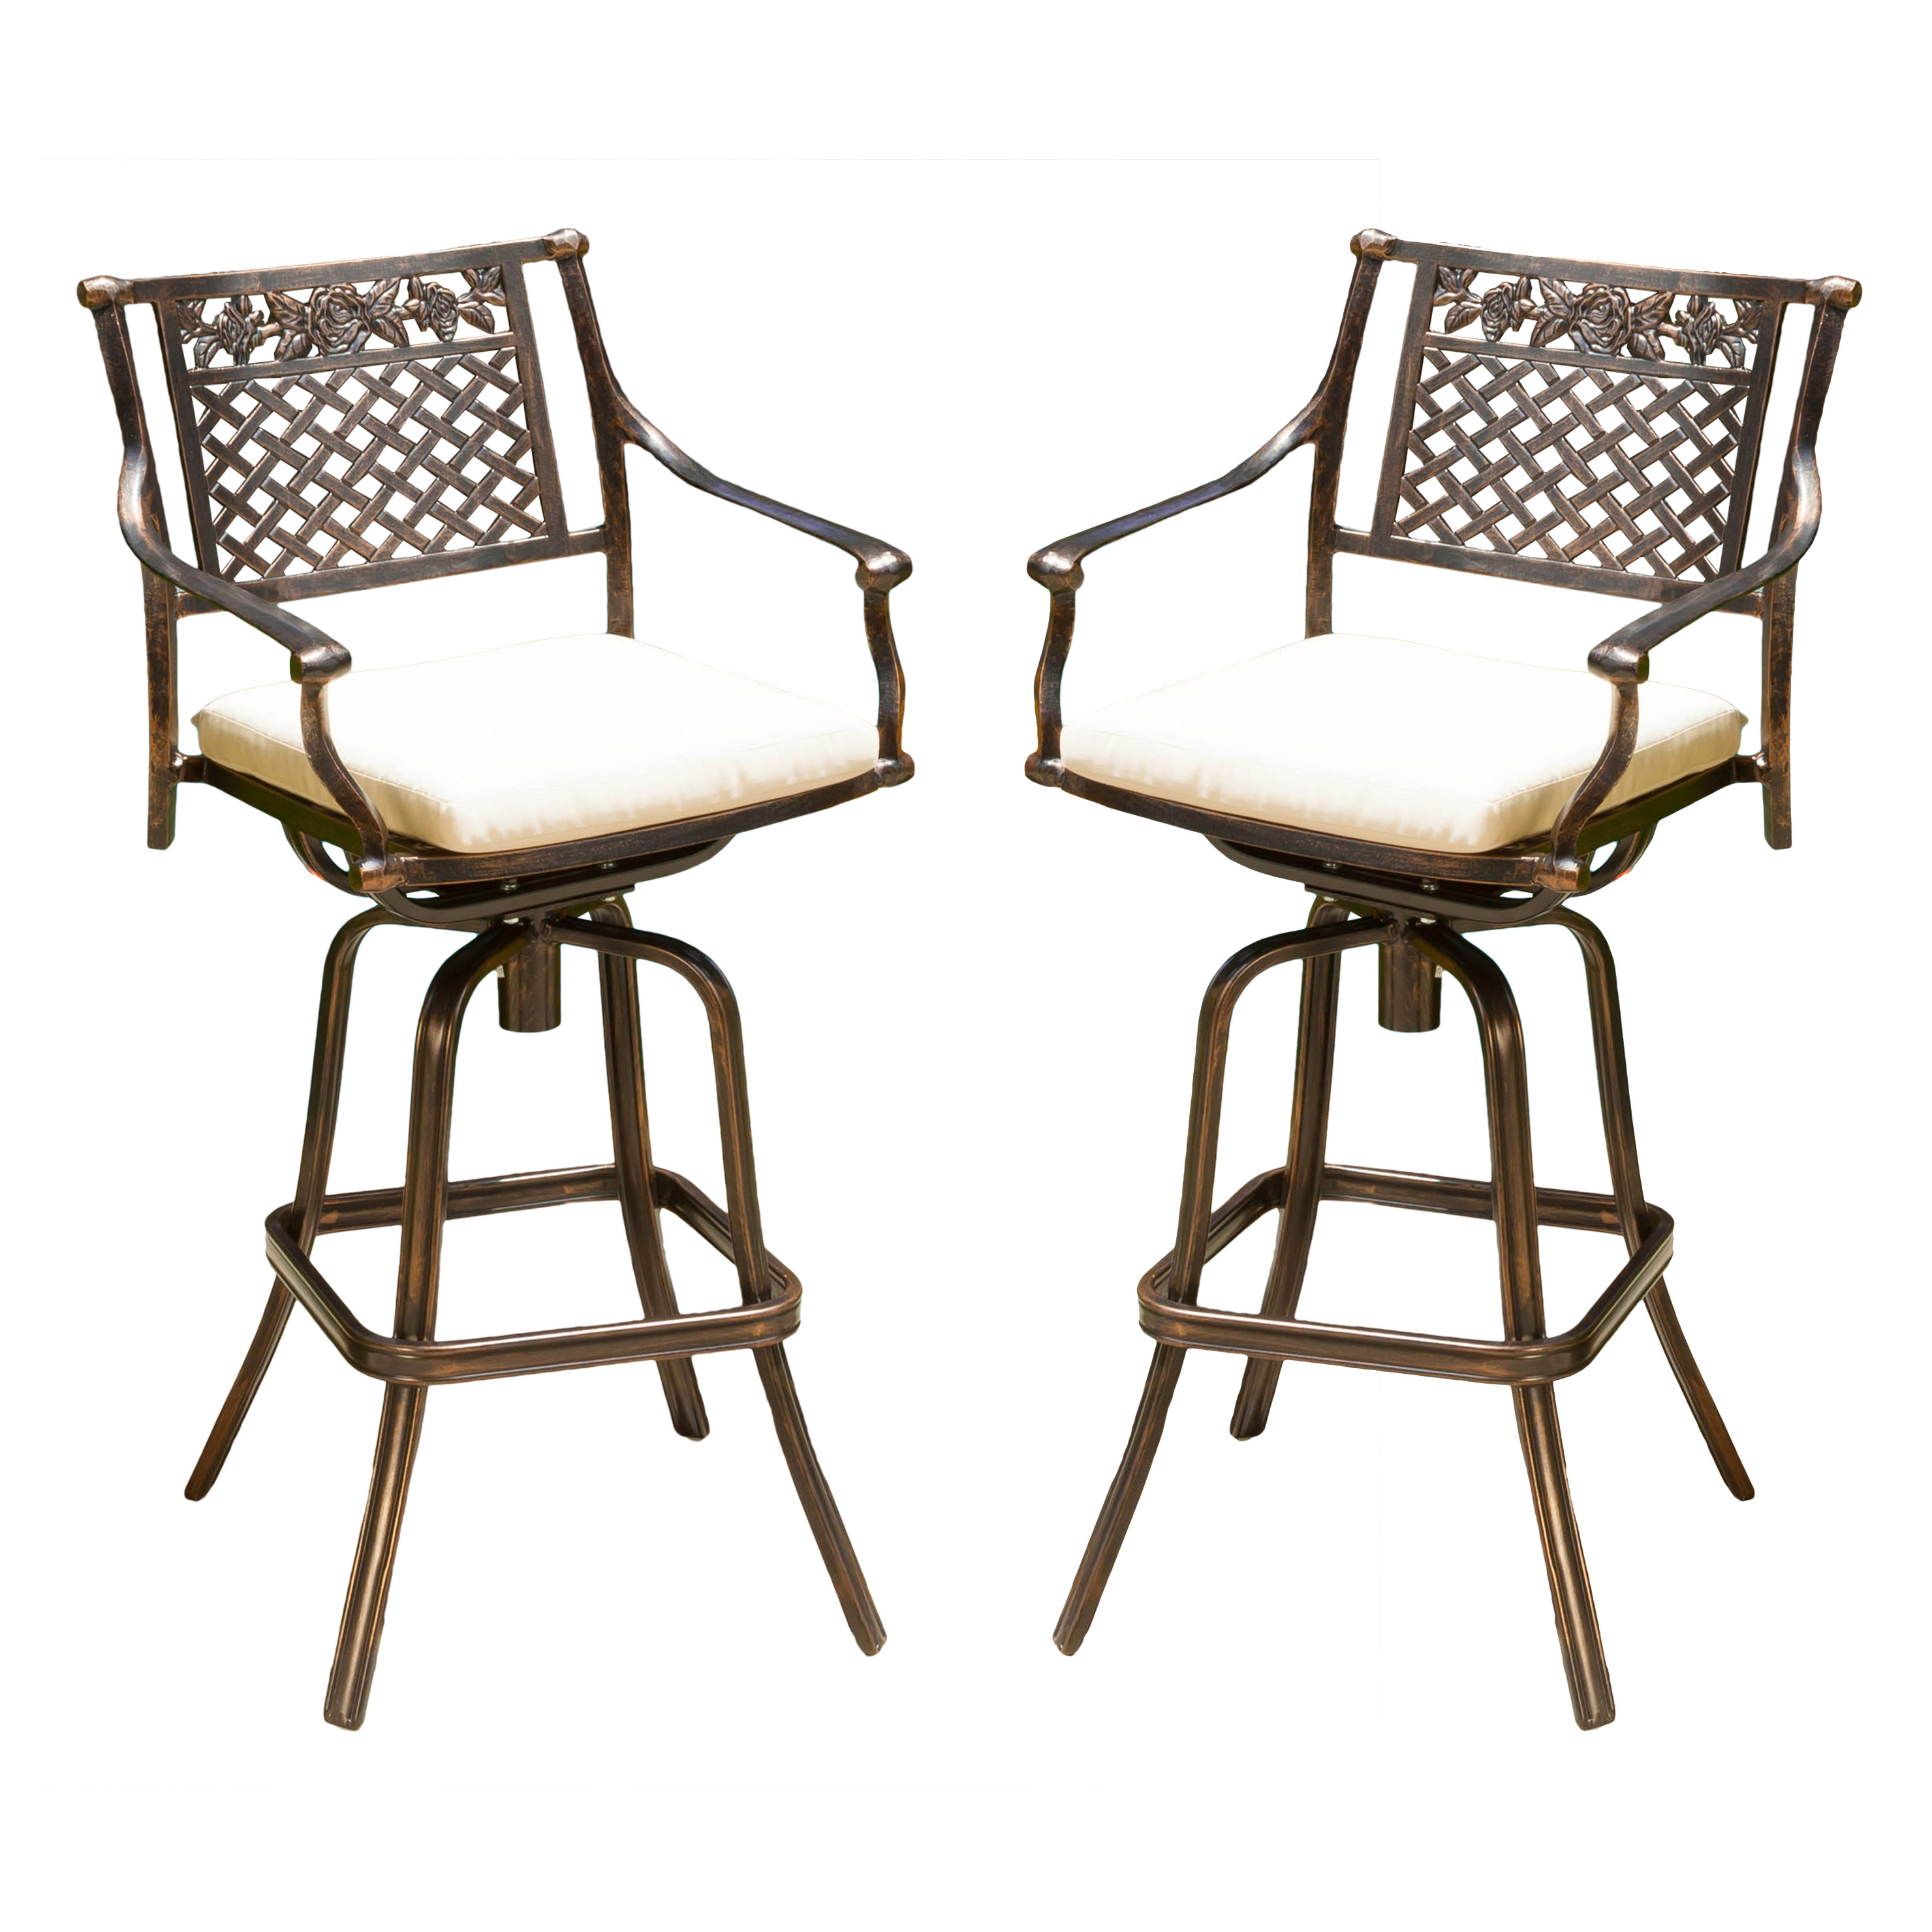 Sienna Cast Aluminum Bar Stool with Cushions (Set of 2) by GDF Studio